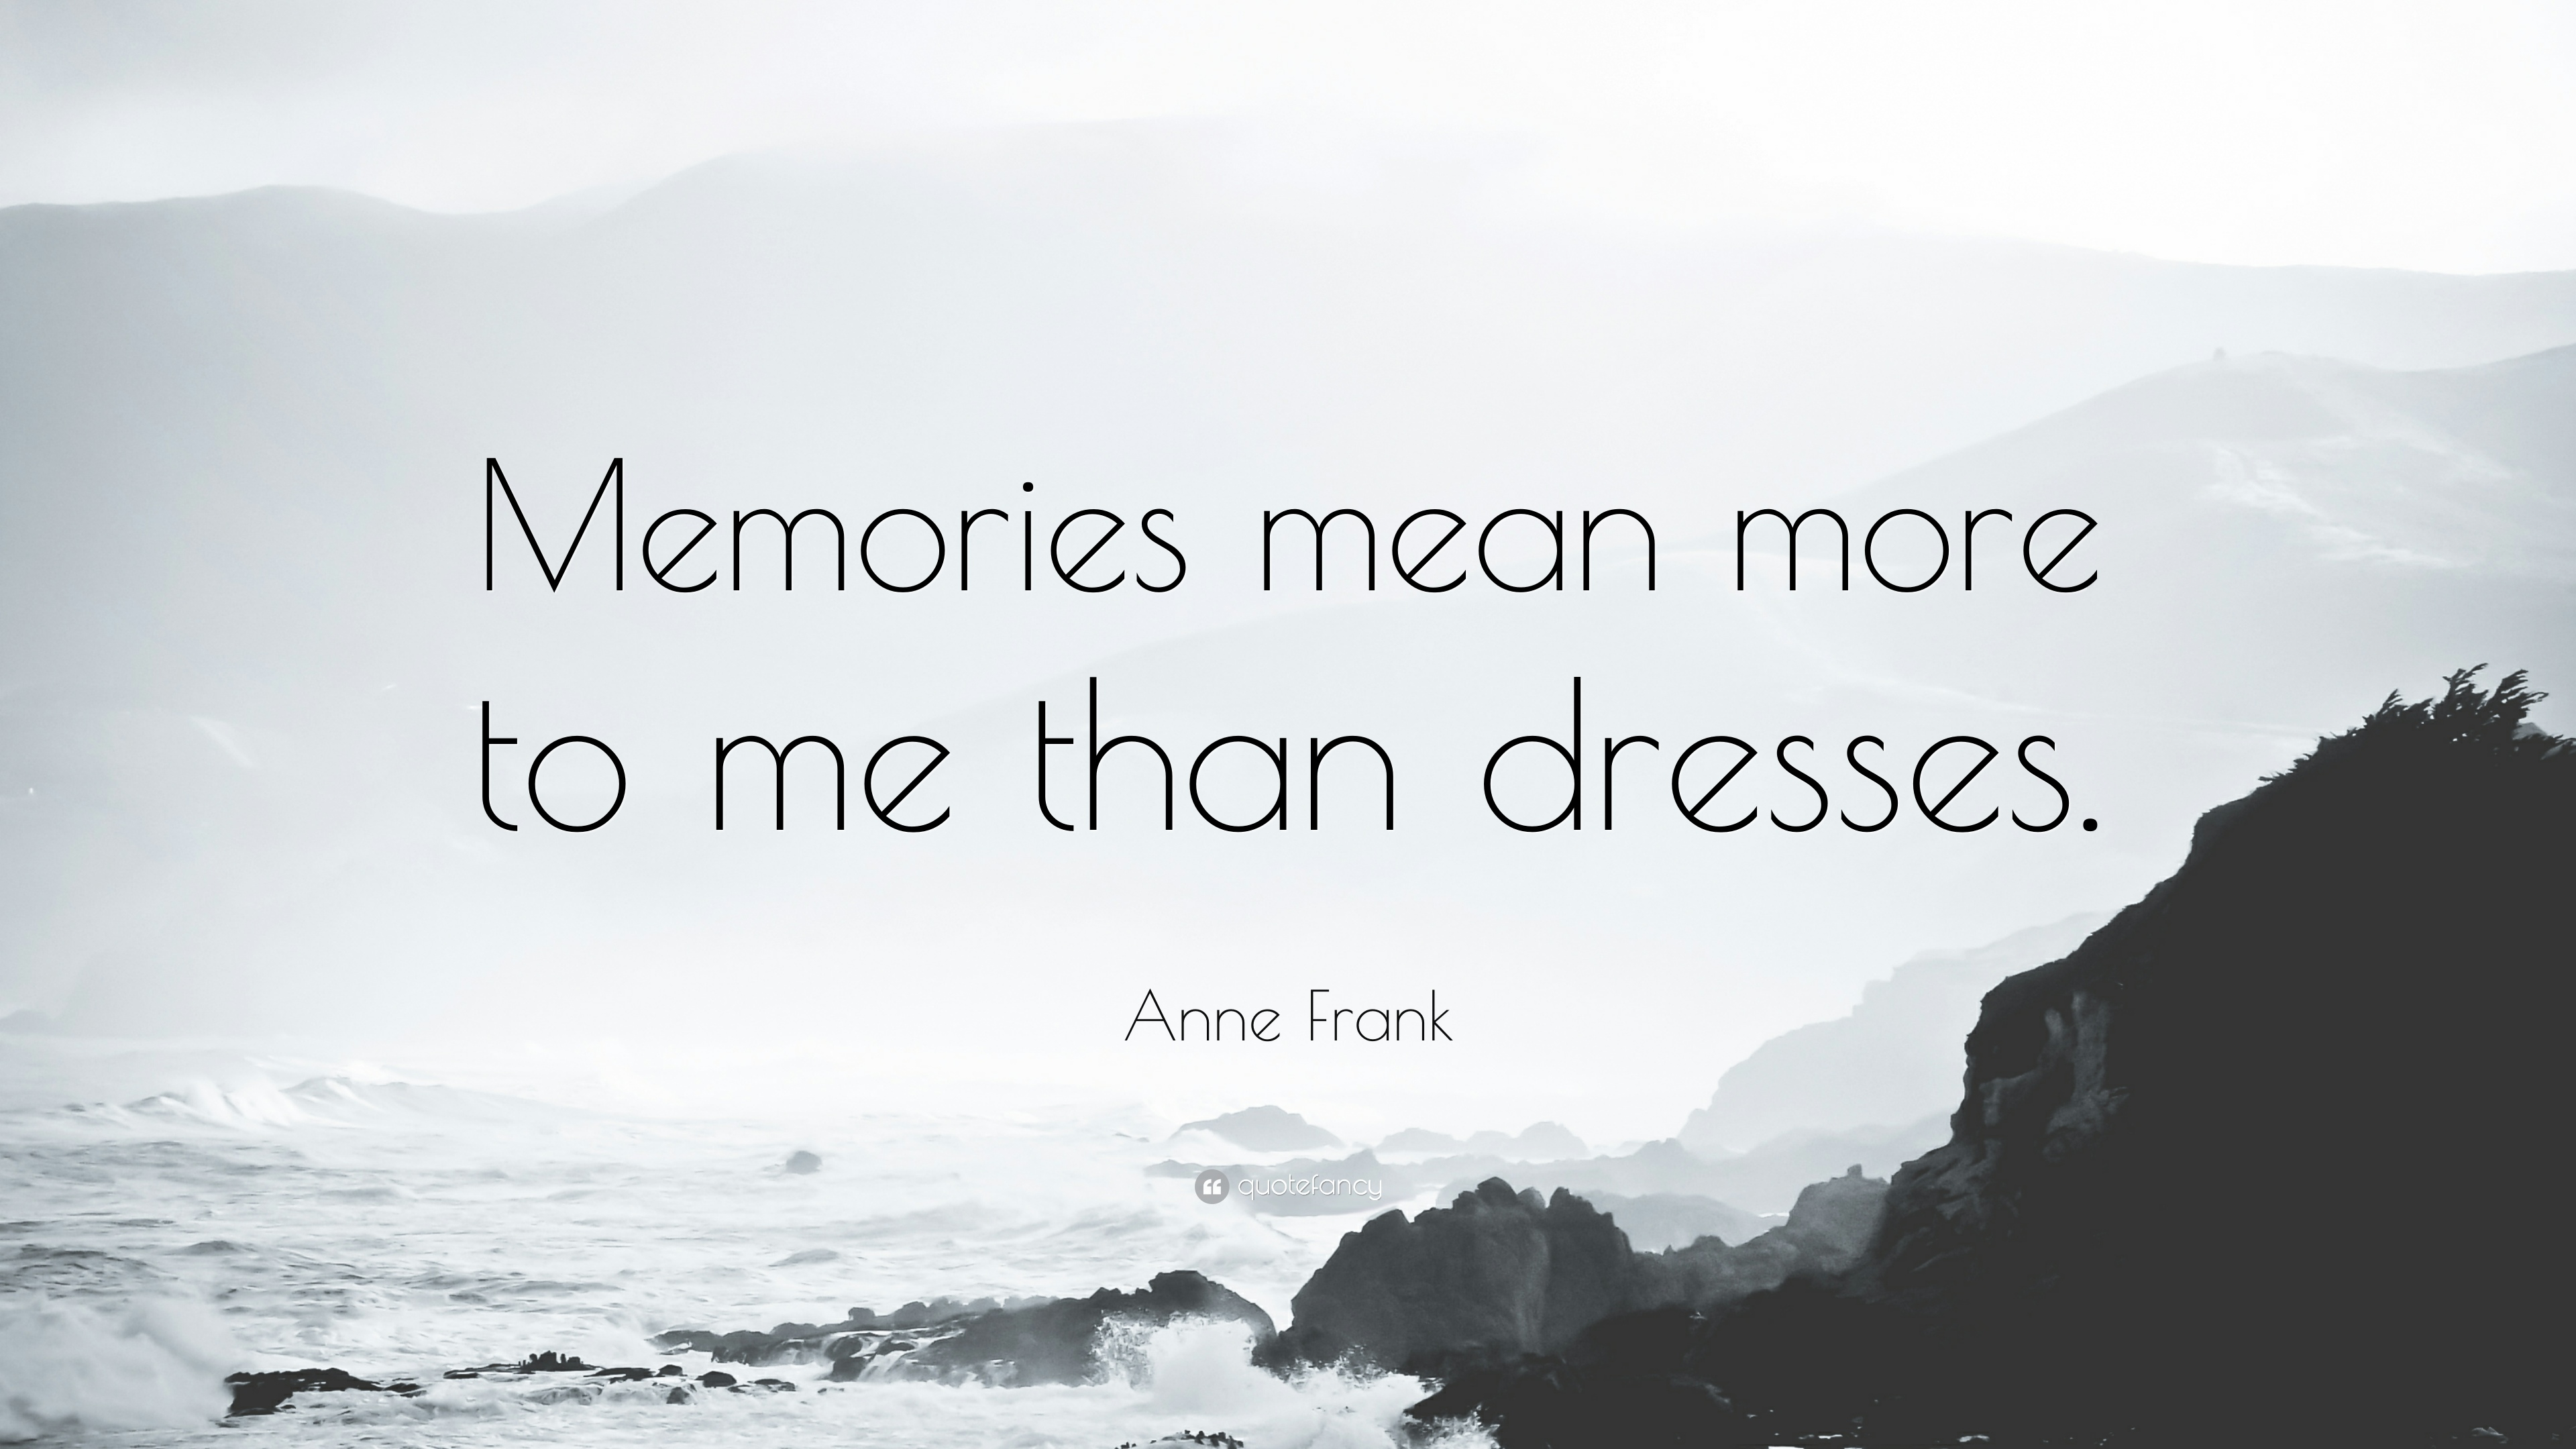 After 5 long dresses quotes